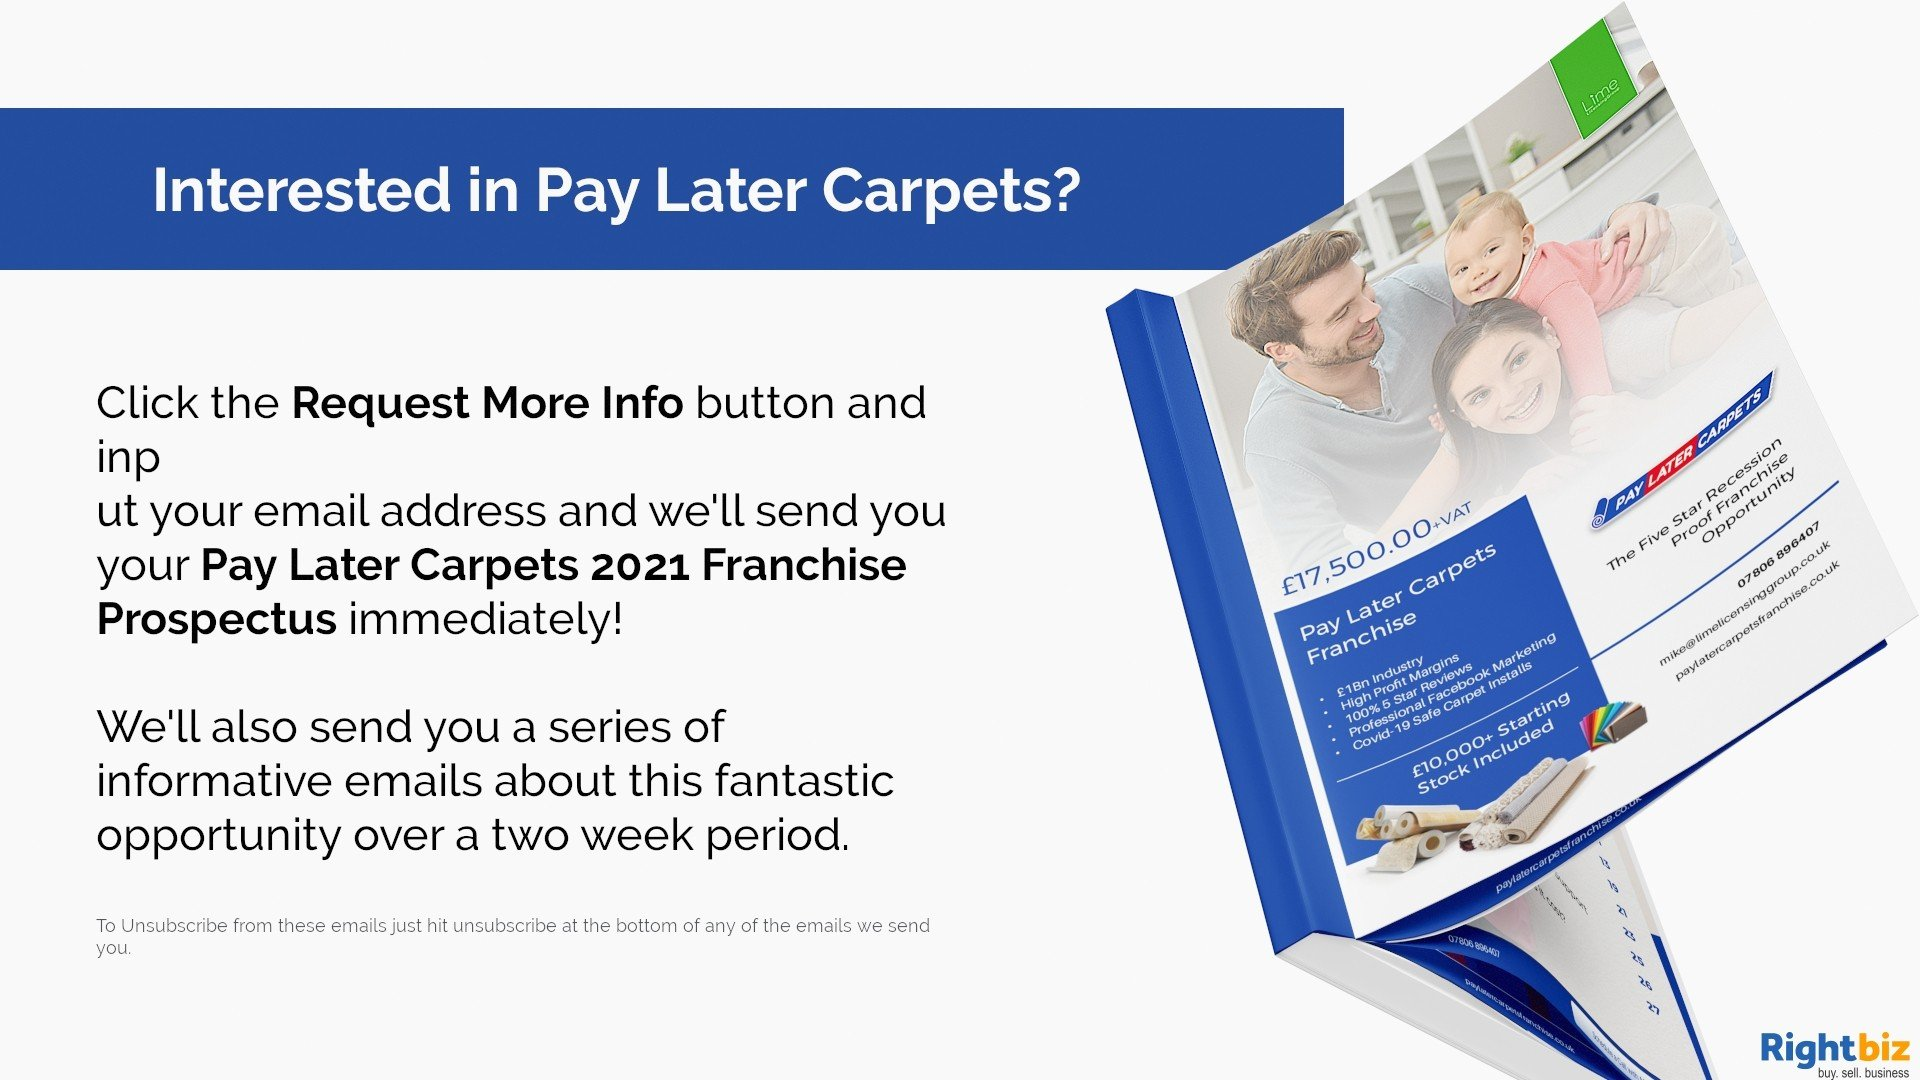 Pay Later Carpets Franchise Salisbury Our First Franchisee Made £11,000+ Profit in Month One - Image 6